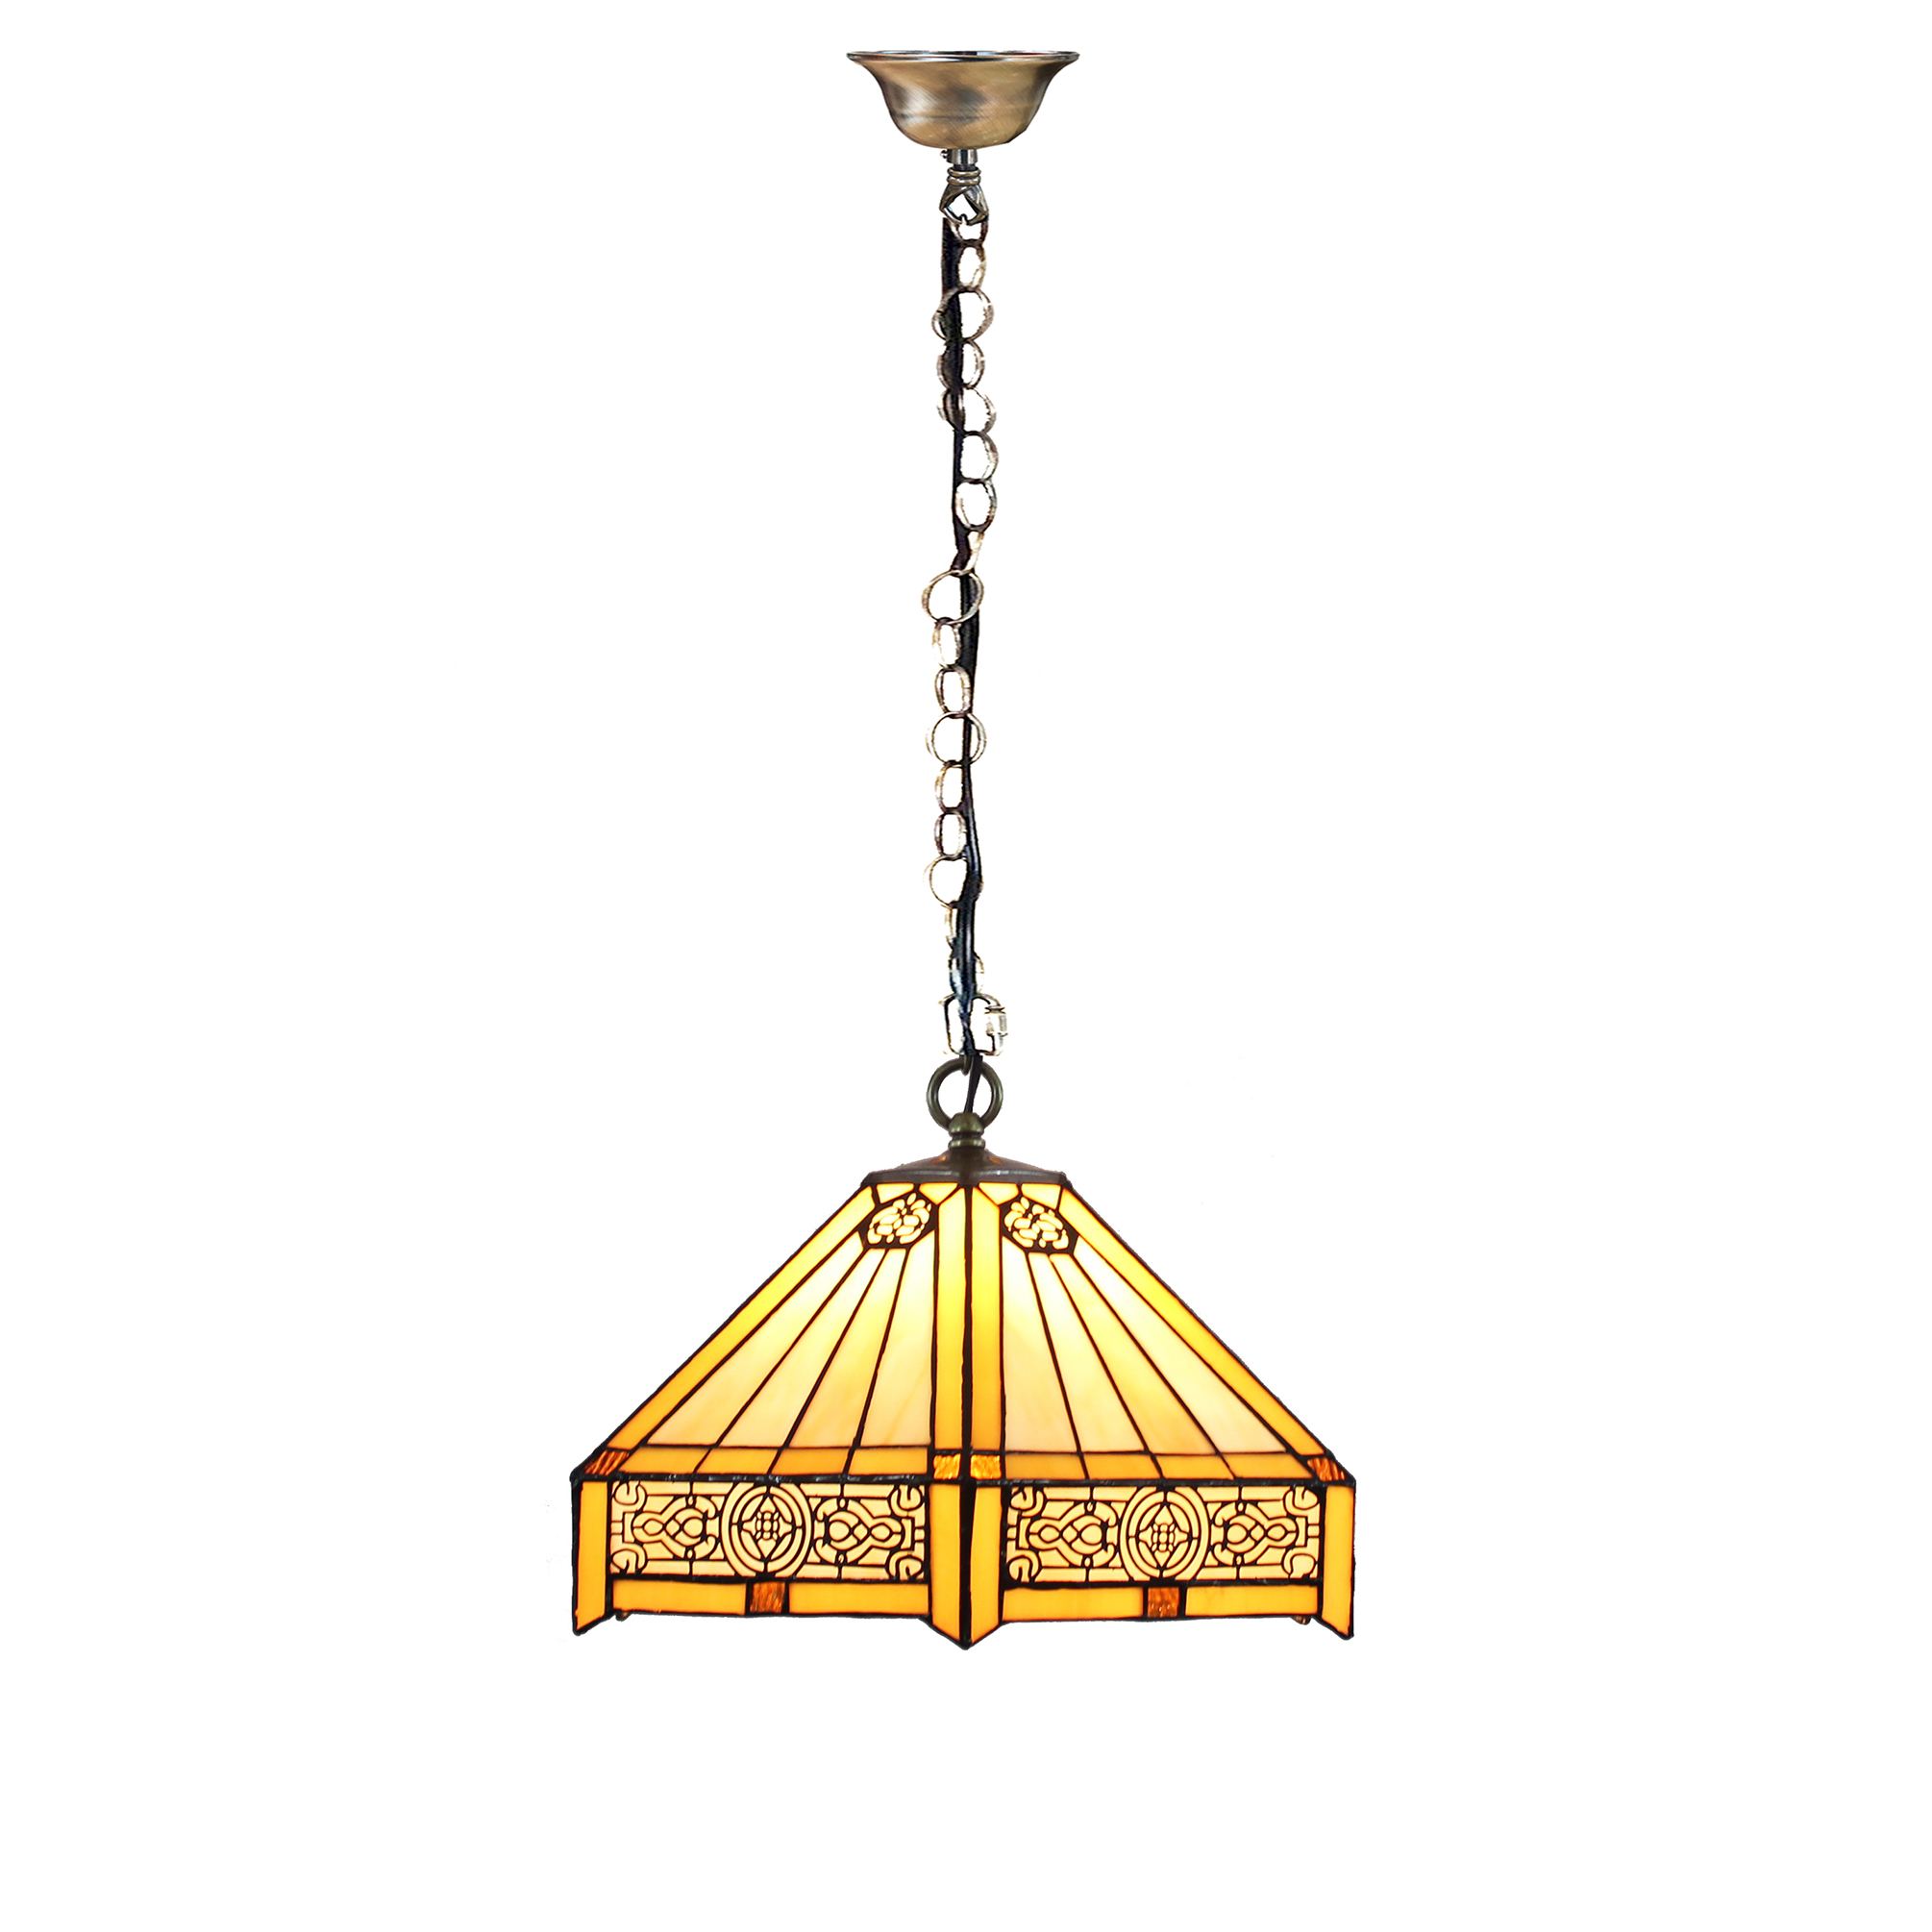 Tiffany Hanging Bar Light Stained Glass Island Lamp Ceiling Pendant - Hanging island light fixture